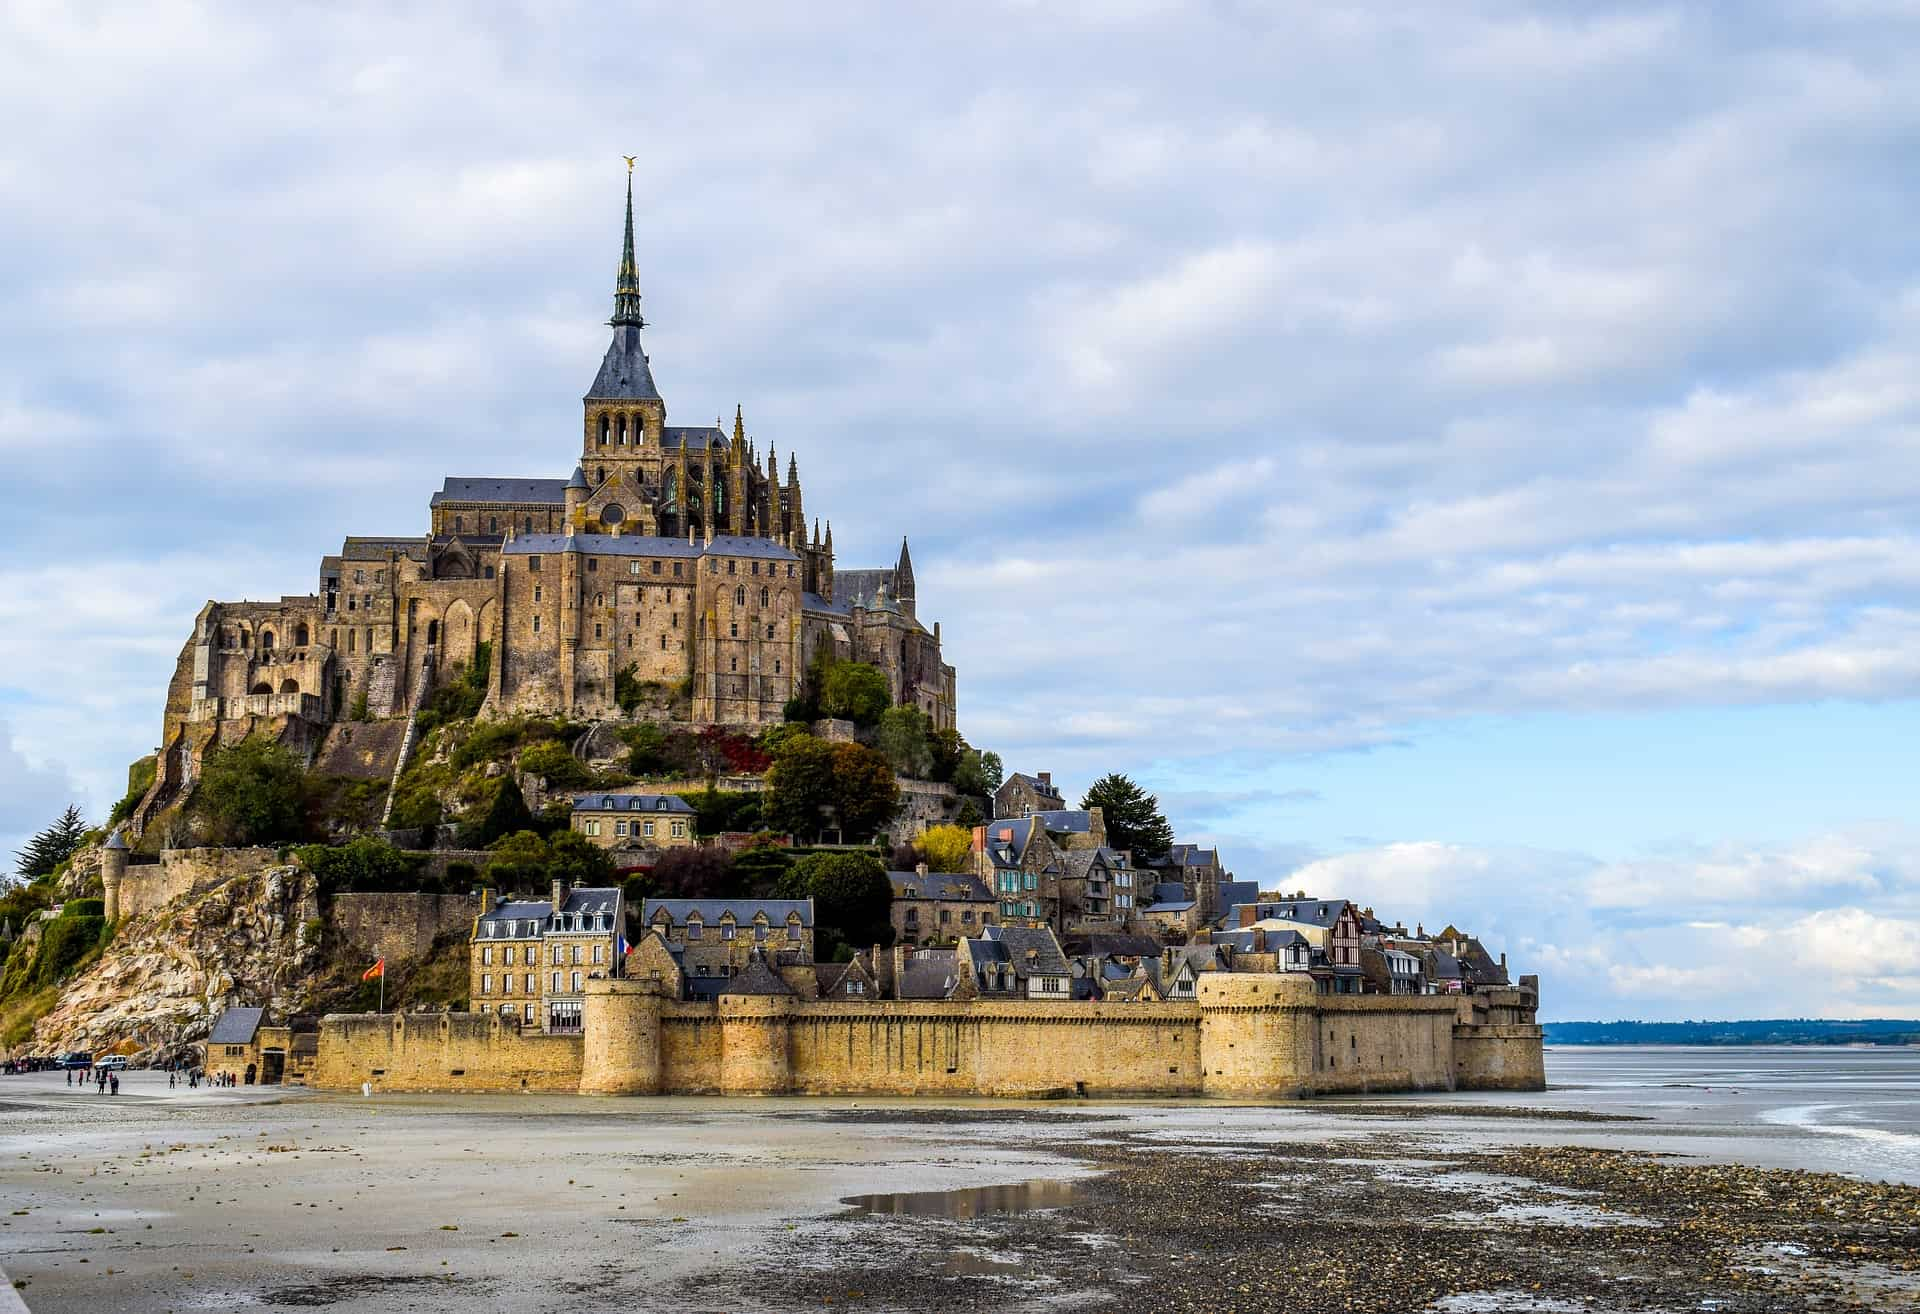 The Mont St. Michel lays within day trip distance from Paris - pimp your Paris vacation with a day tours to a world heritage site. Taking a day trip from Paris to Mont St Michel is clearly on of the best day tours from Paris that you can take